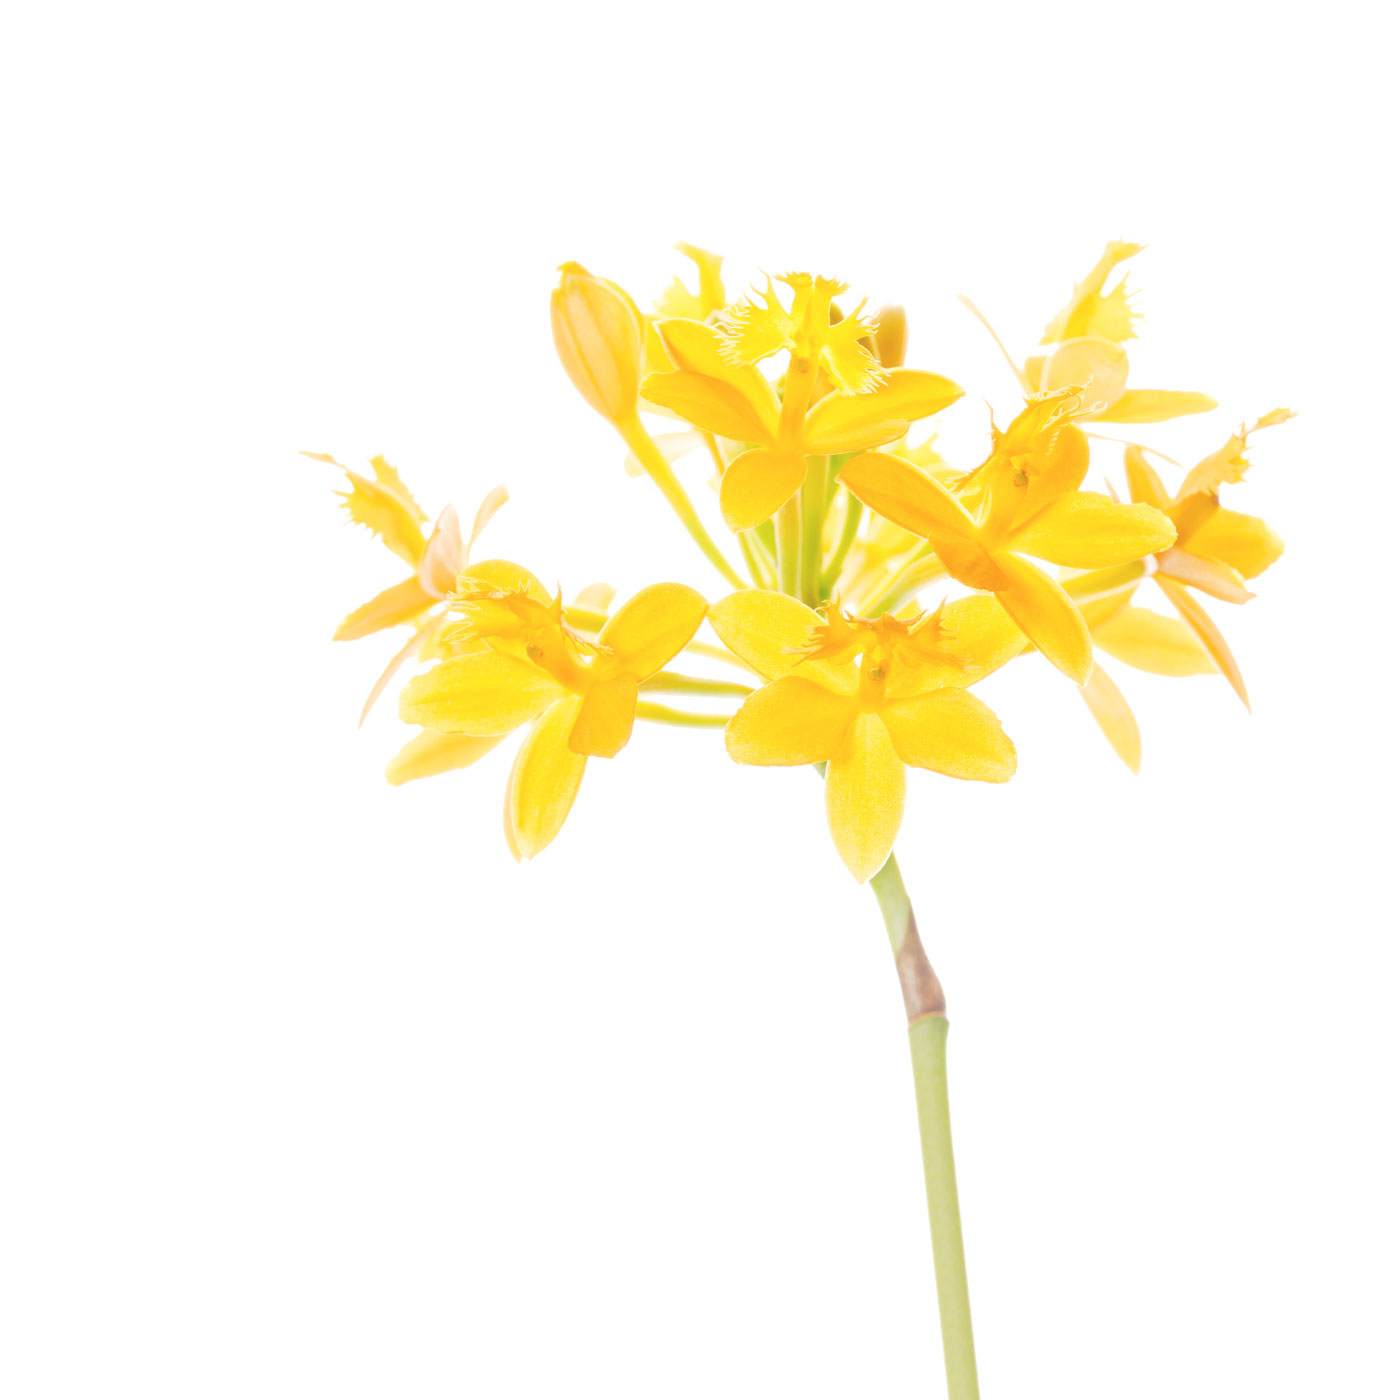 flower, tropical, flora, epidendrum, photo